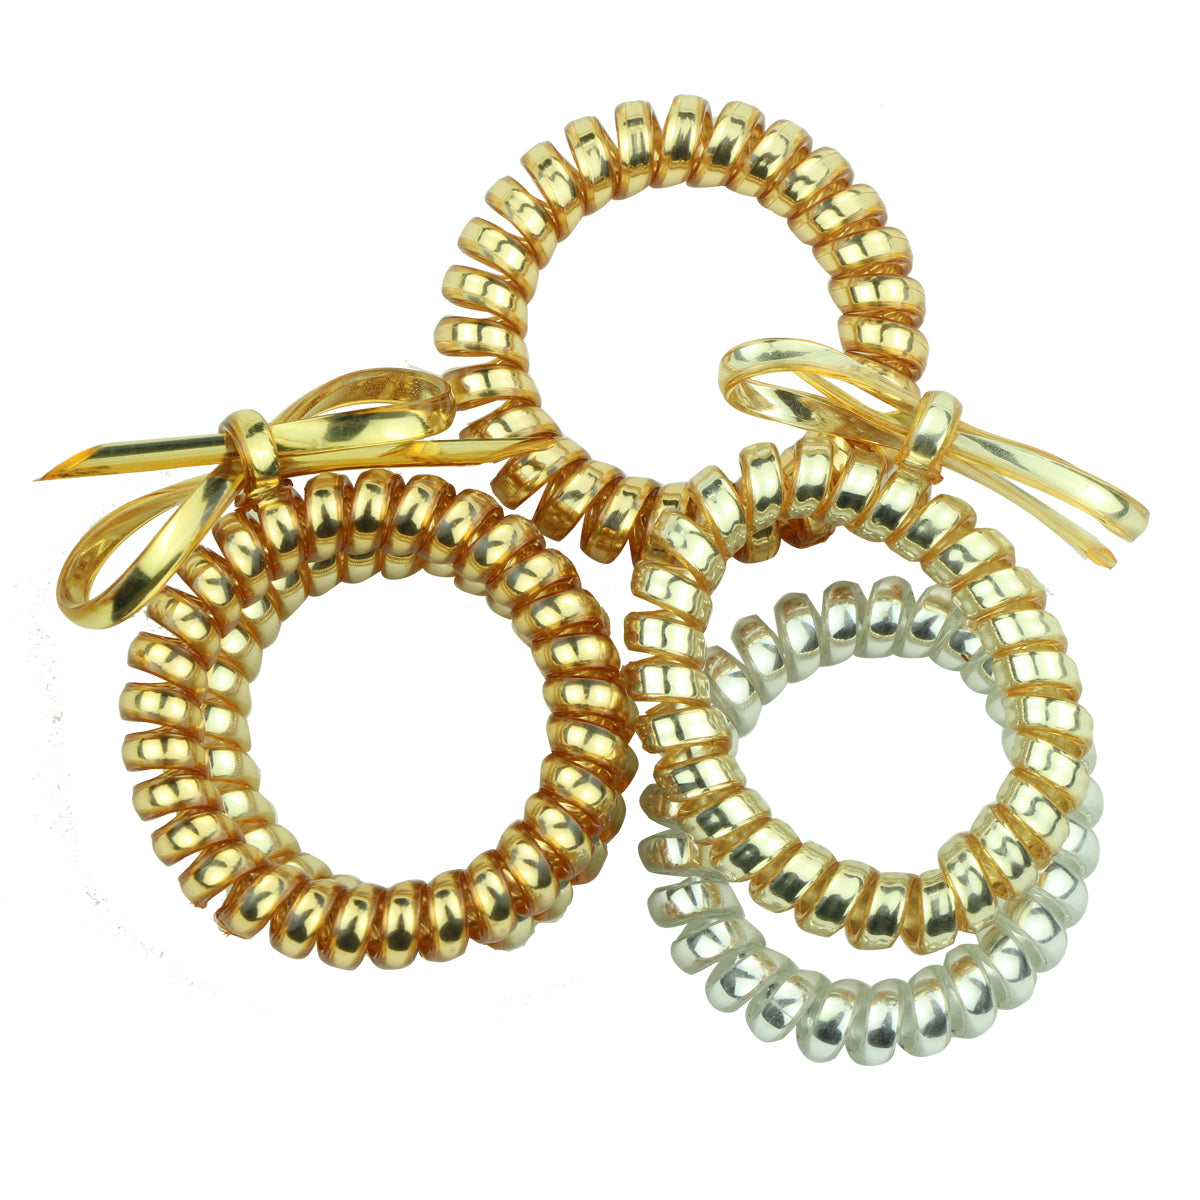 wholesale hair accessories shiny spiral gold phone cord hair bobbles for long hair ladies daily 6442 - SOHOBUCKS CO.,LIMITED